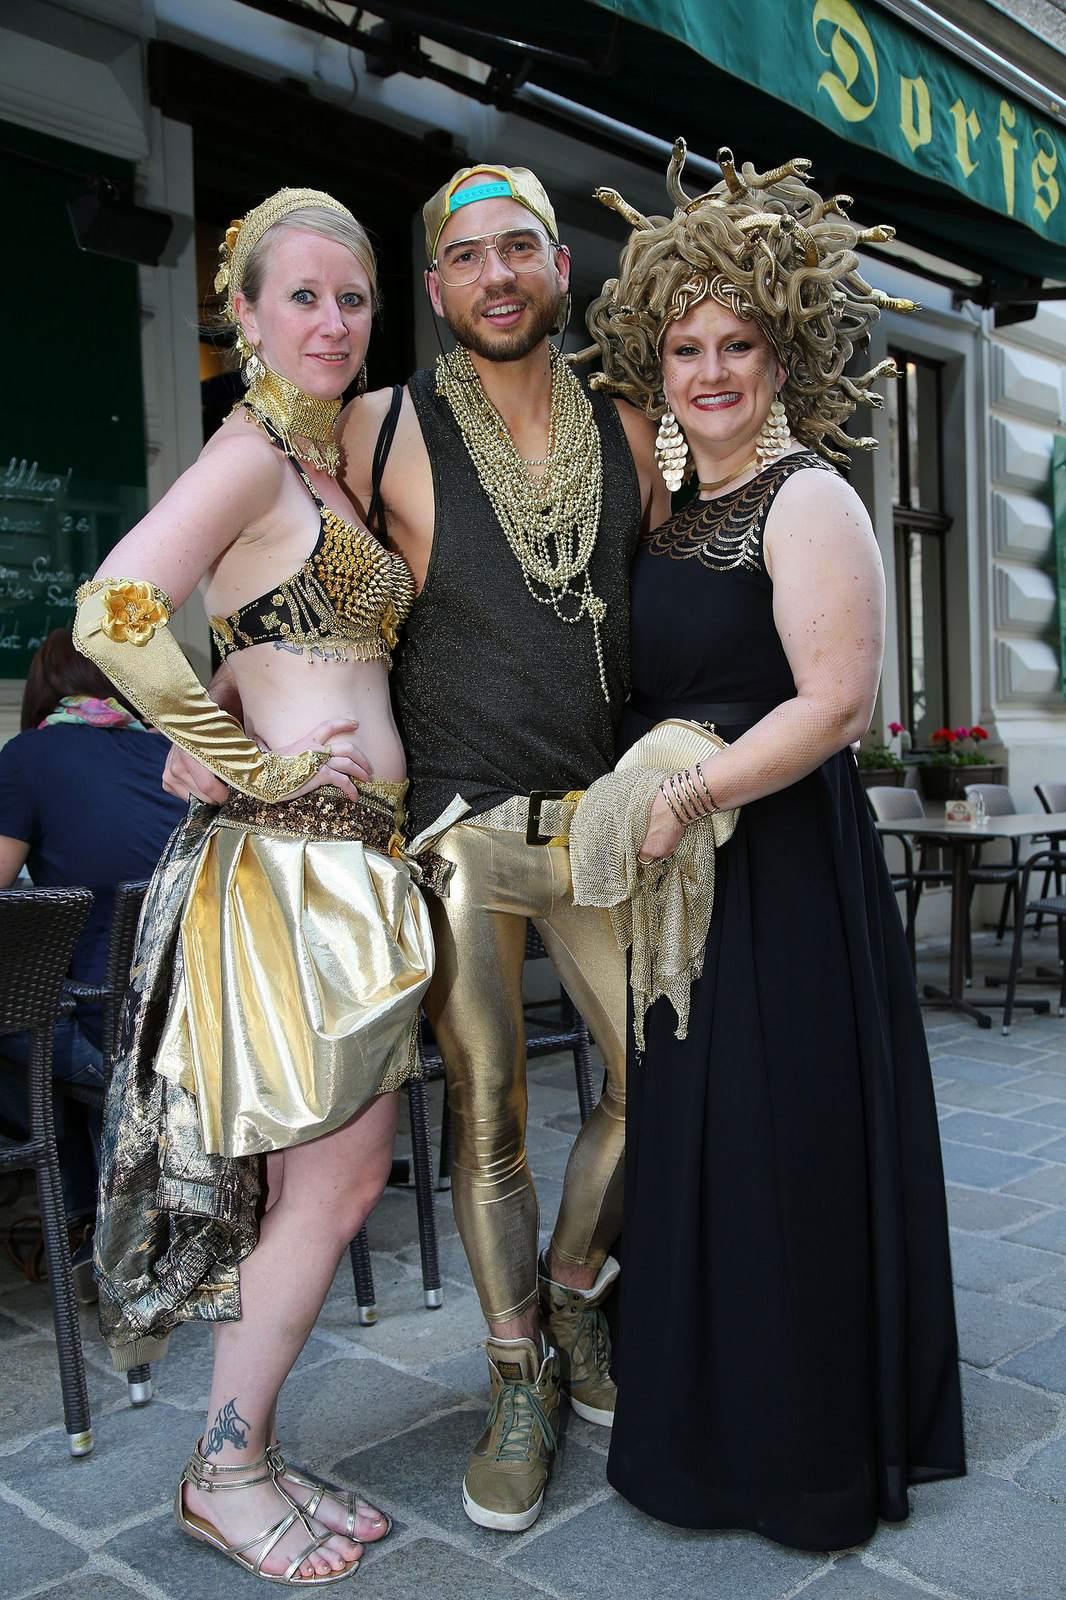 life ball19 Life Ball 2015 in Wien